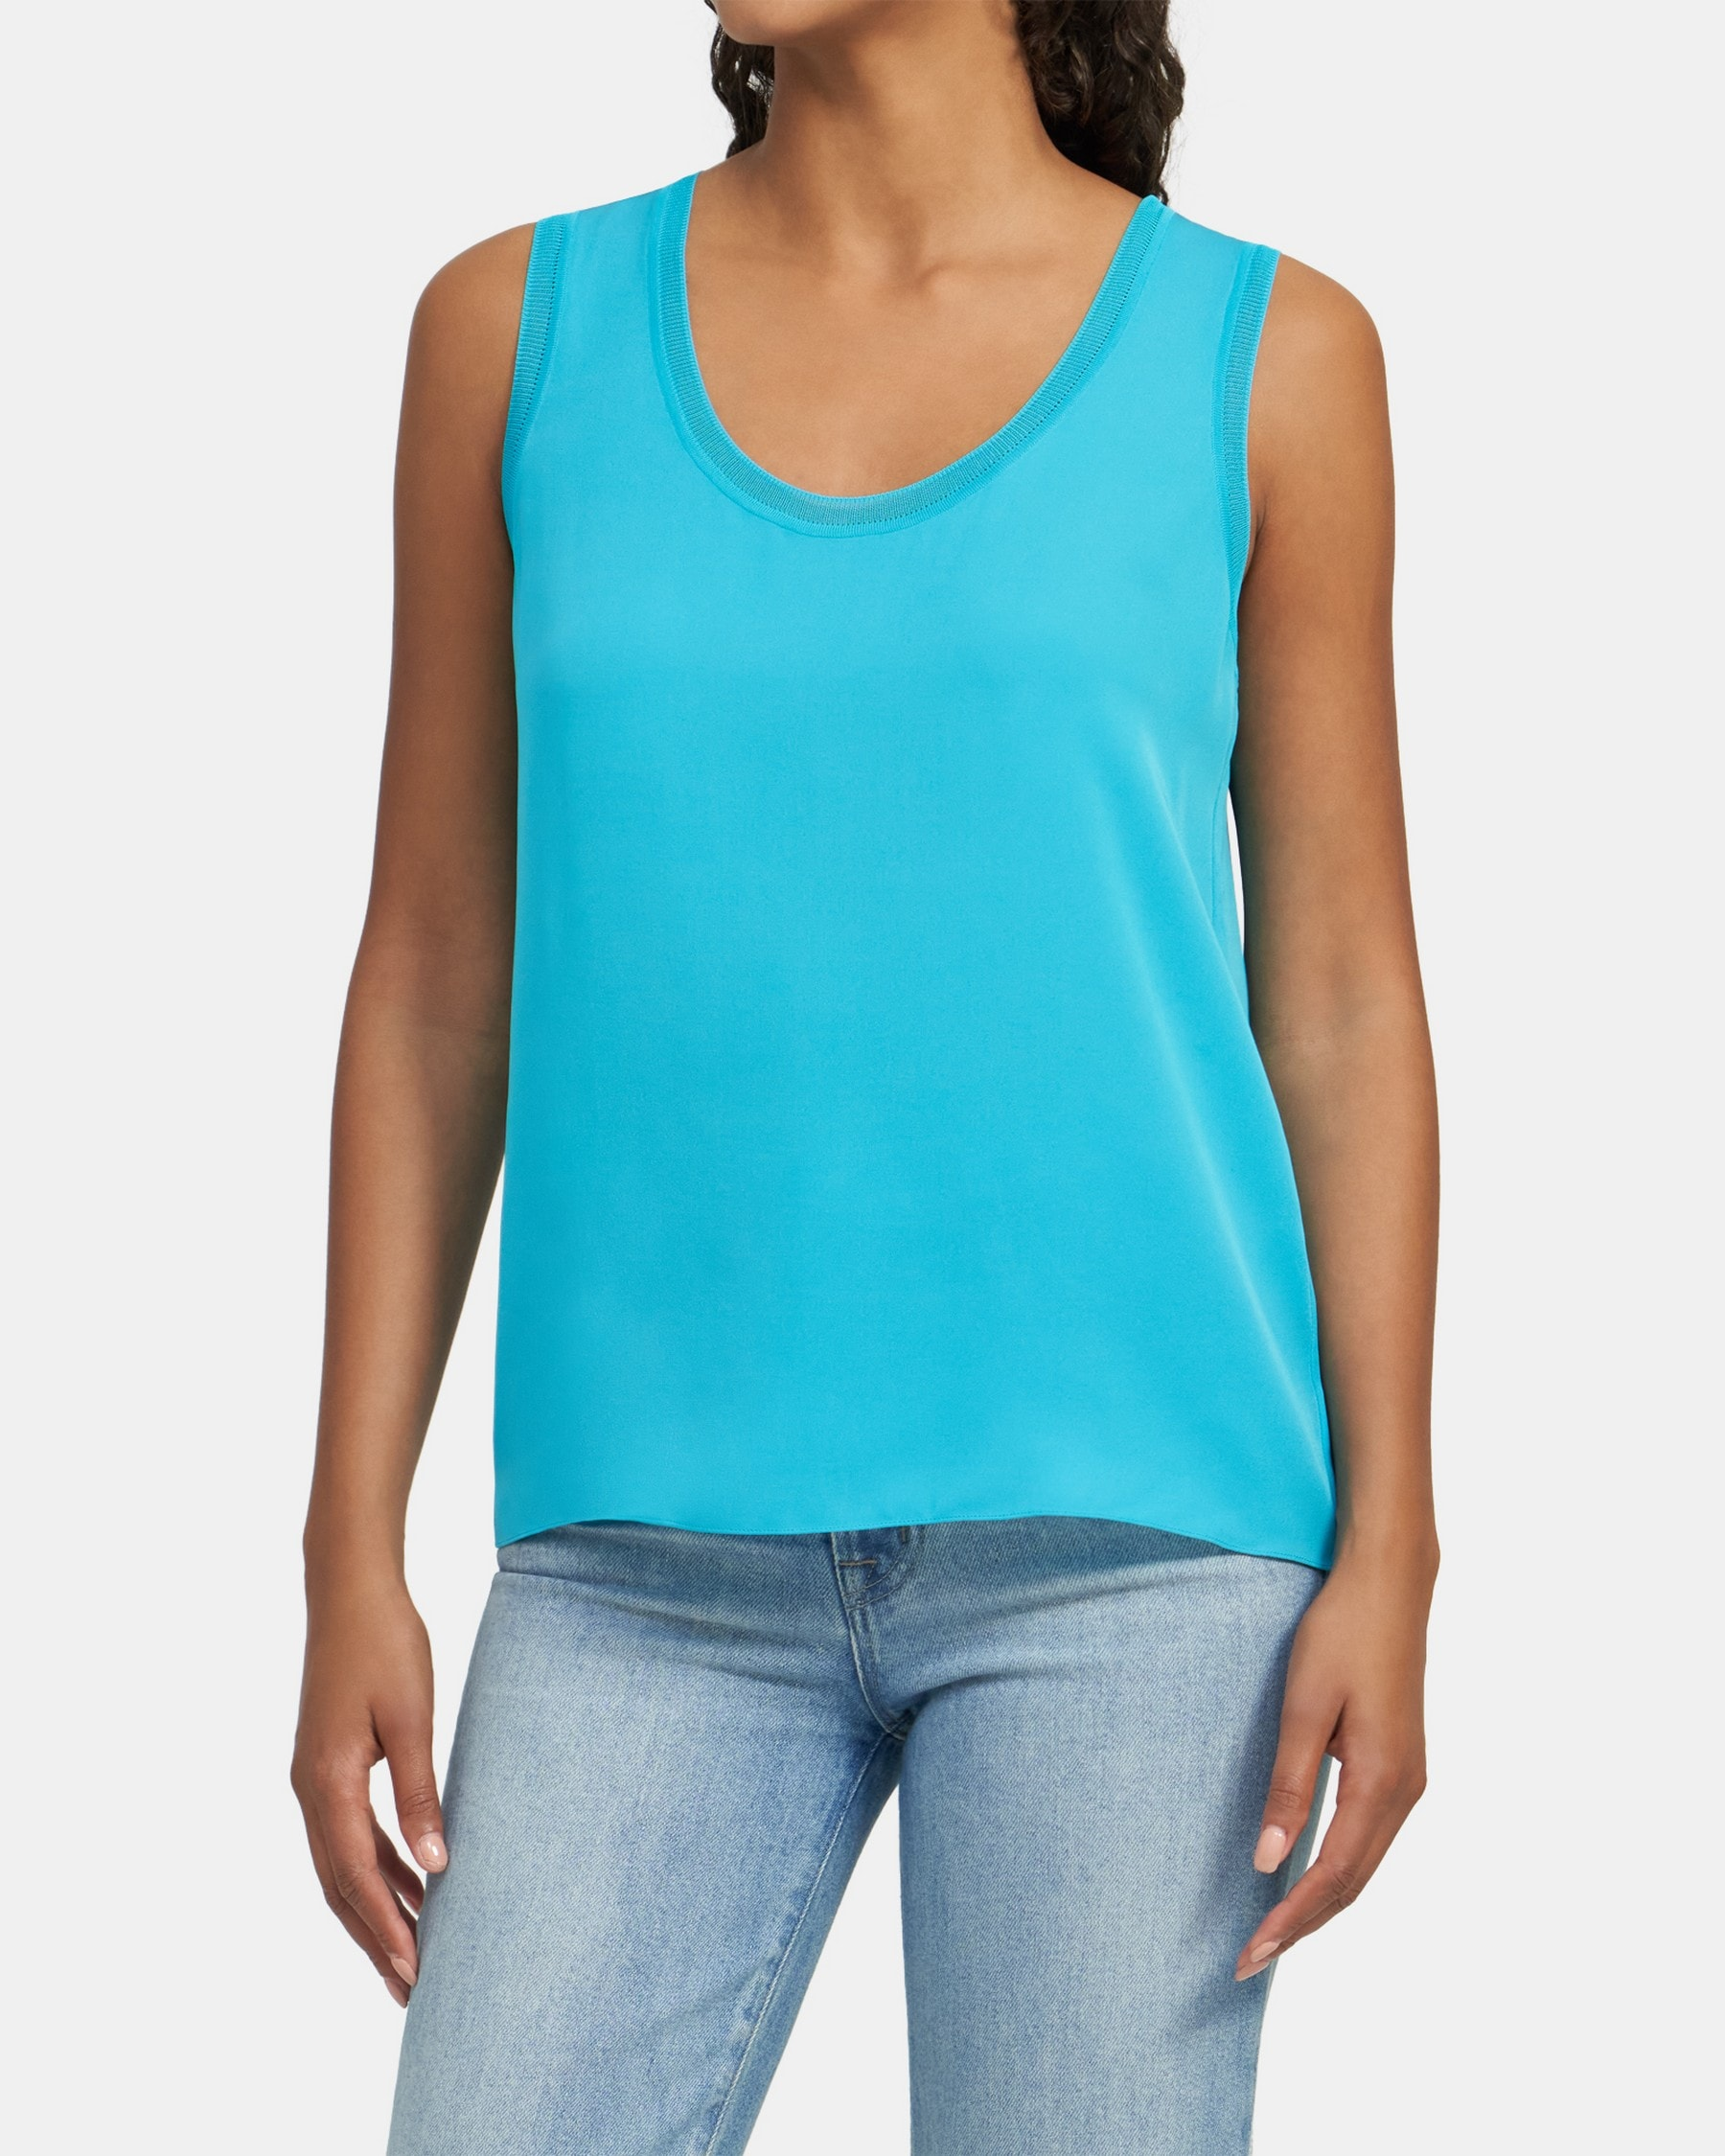 Theory Ribbed Trim Scoop Tank Top in Silk